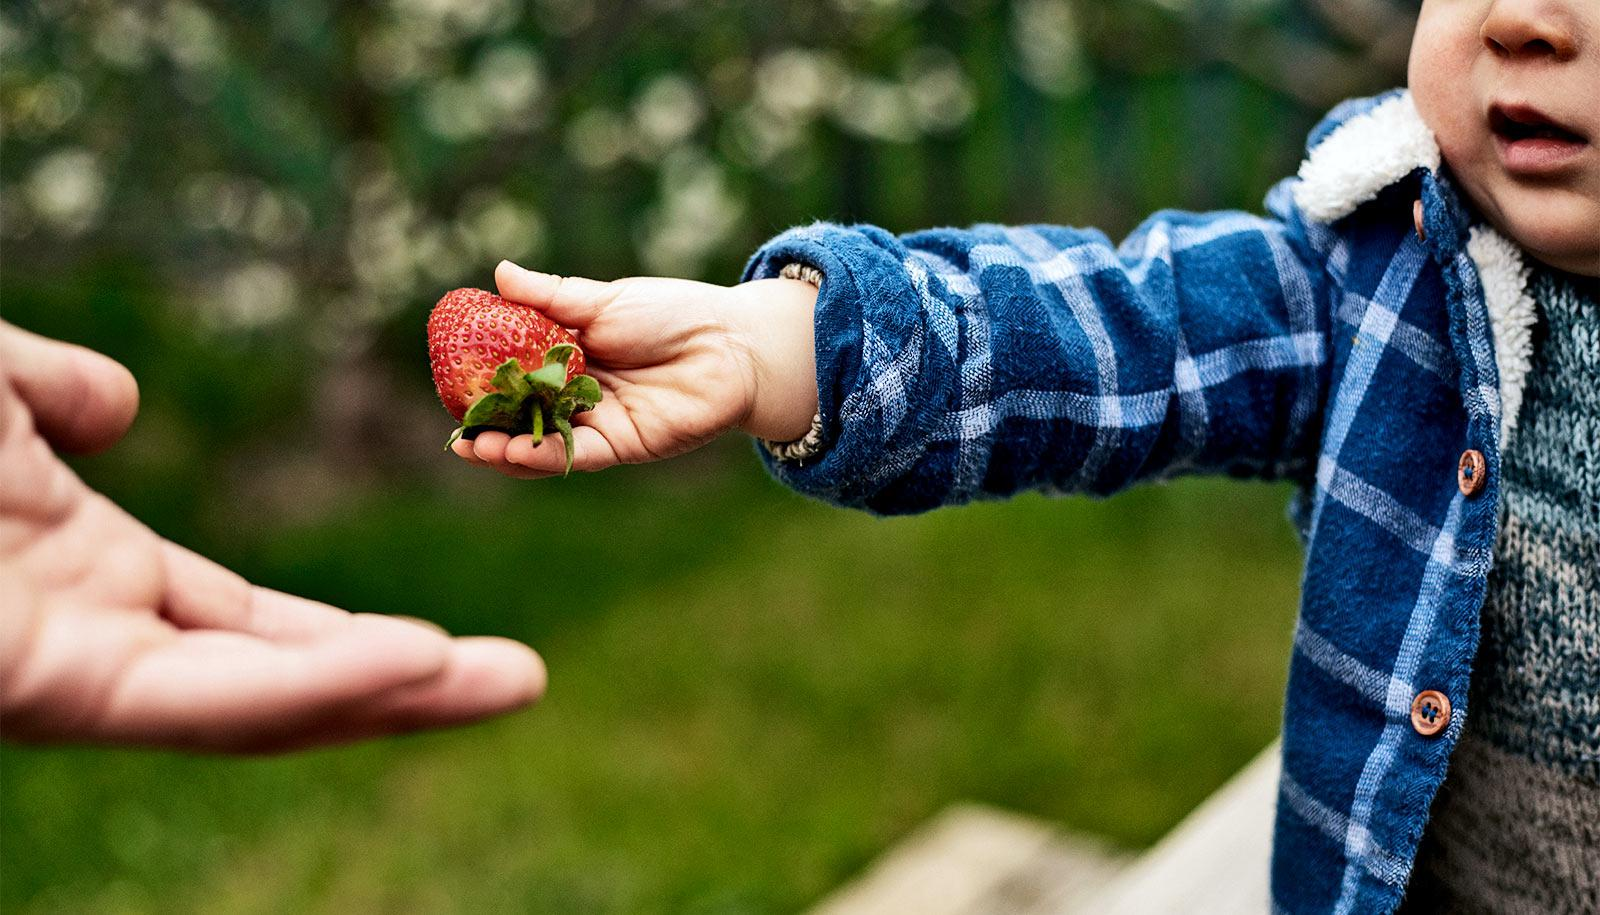 A toddler wearing a blue and white winter coat hands a strawberry to an adult who's off camera, with leaves and grass in the background